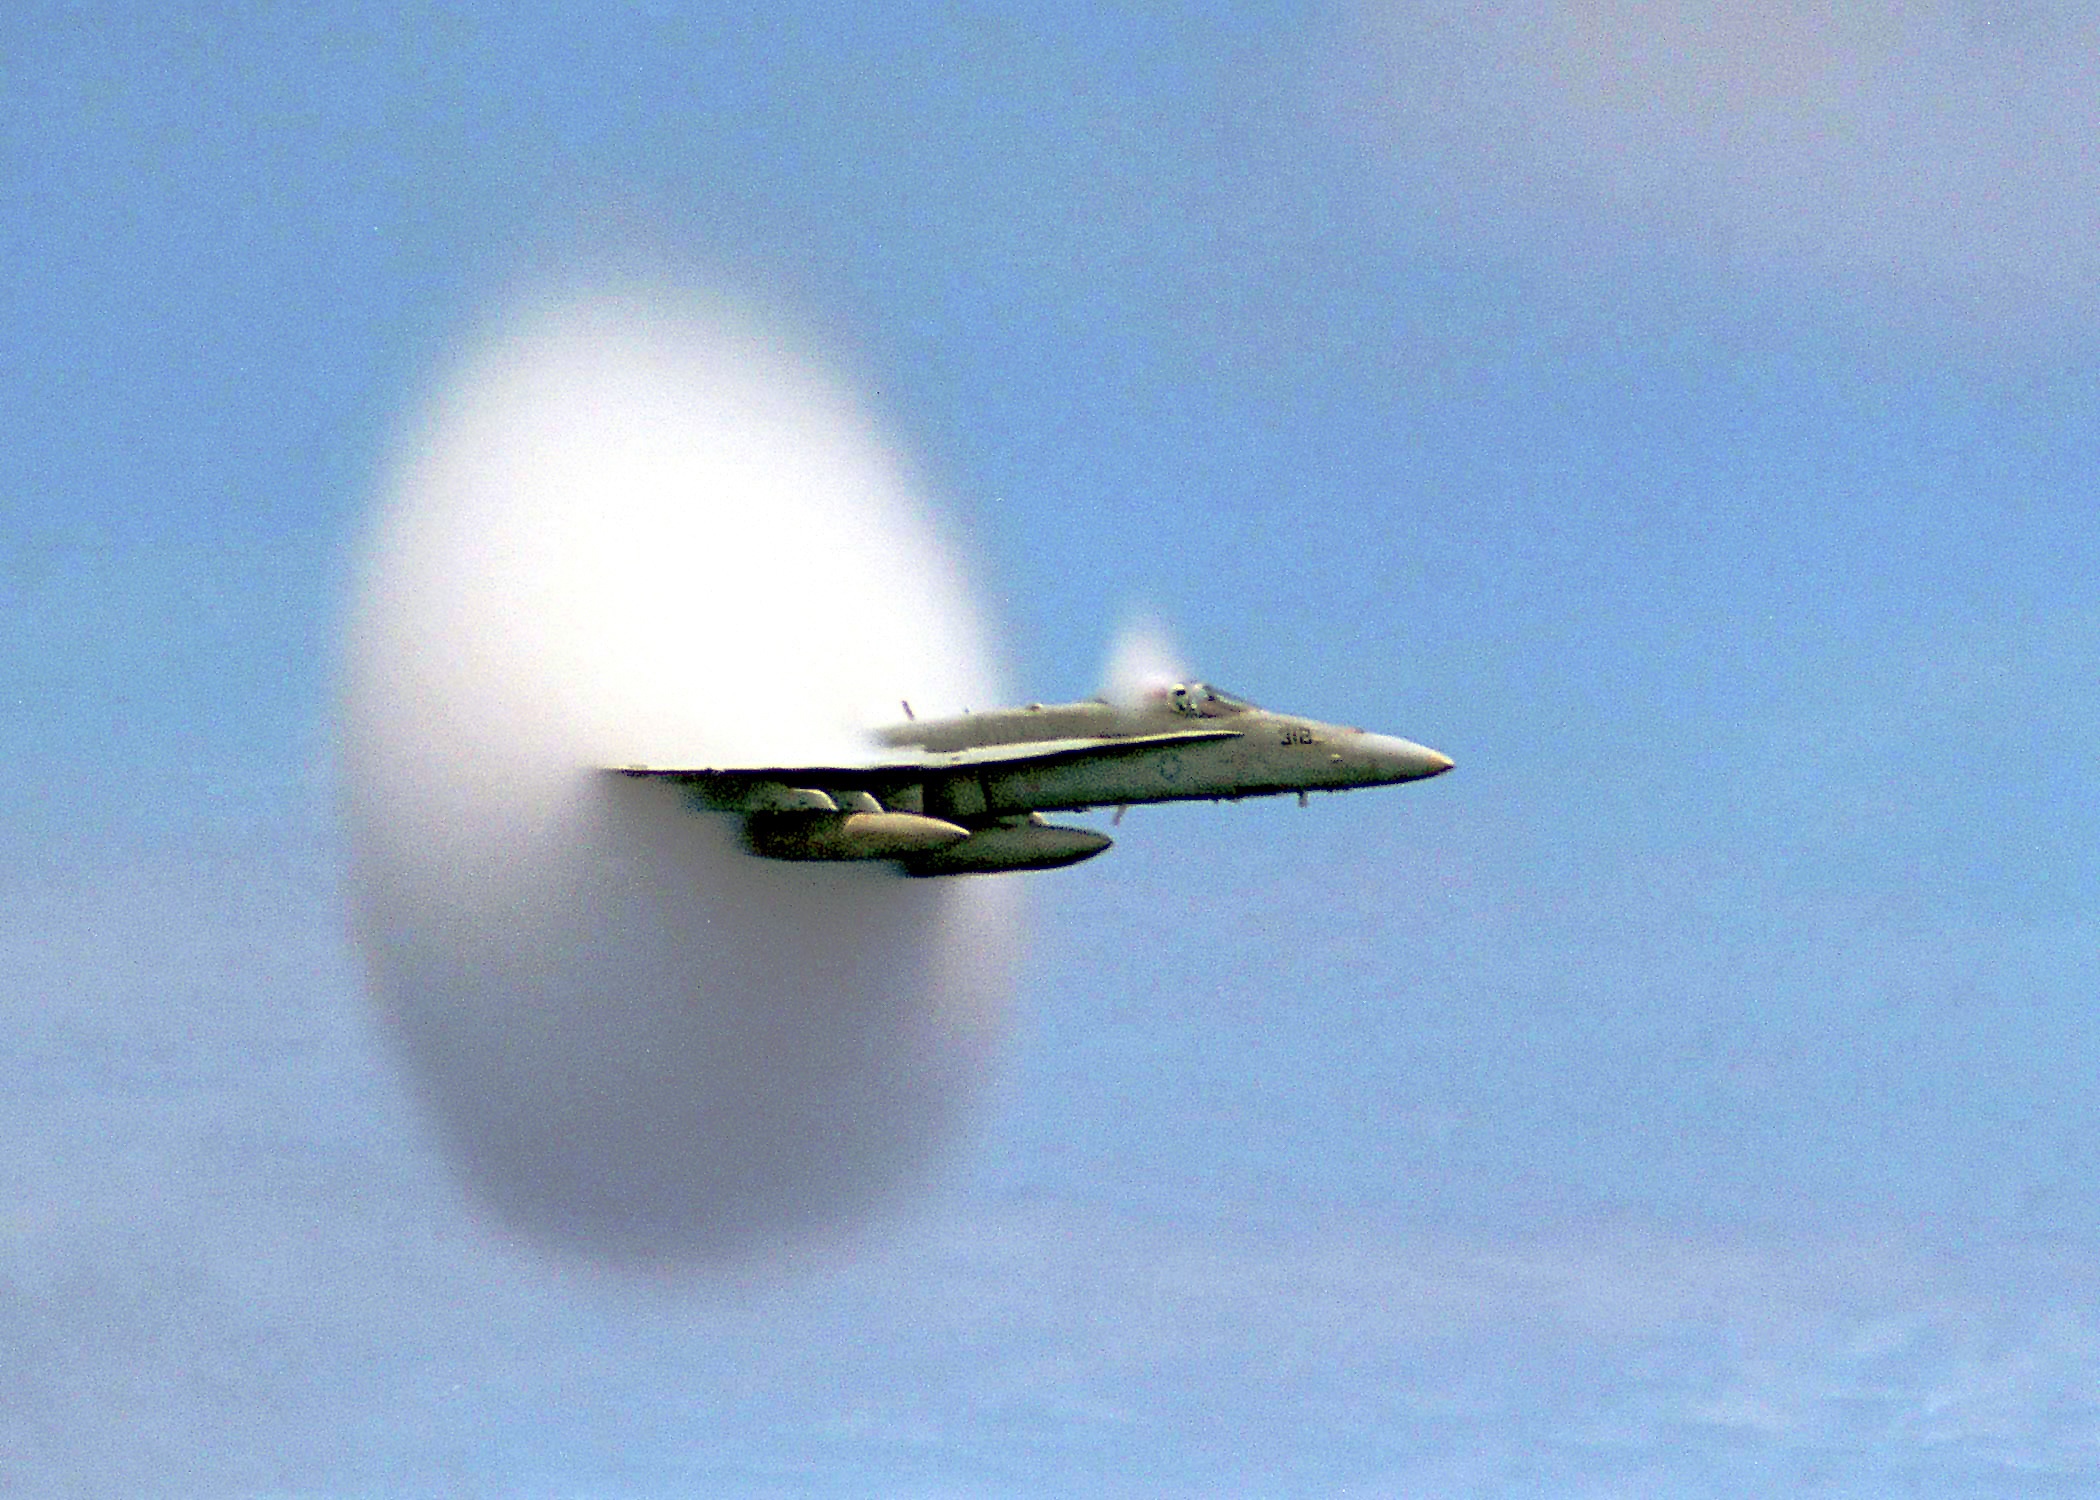 """990707-N-6483G-001 ABOARD USS CONSTELLATION (July 7, 1999)-- Lieutenant Ron Candiloro, assigned to Fighter Squadron One Five One (VF-151), breaks the sound barrier in an F/A-18 """"Hornet"""". VF-151 is currently deployed with the USS Constellation (CV 64) battlegroup.  U.S. Navy photo by Ensign John Gay.  (RELEASED)"""